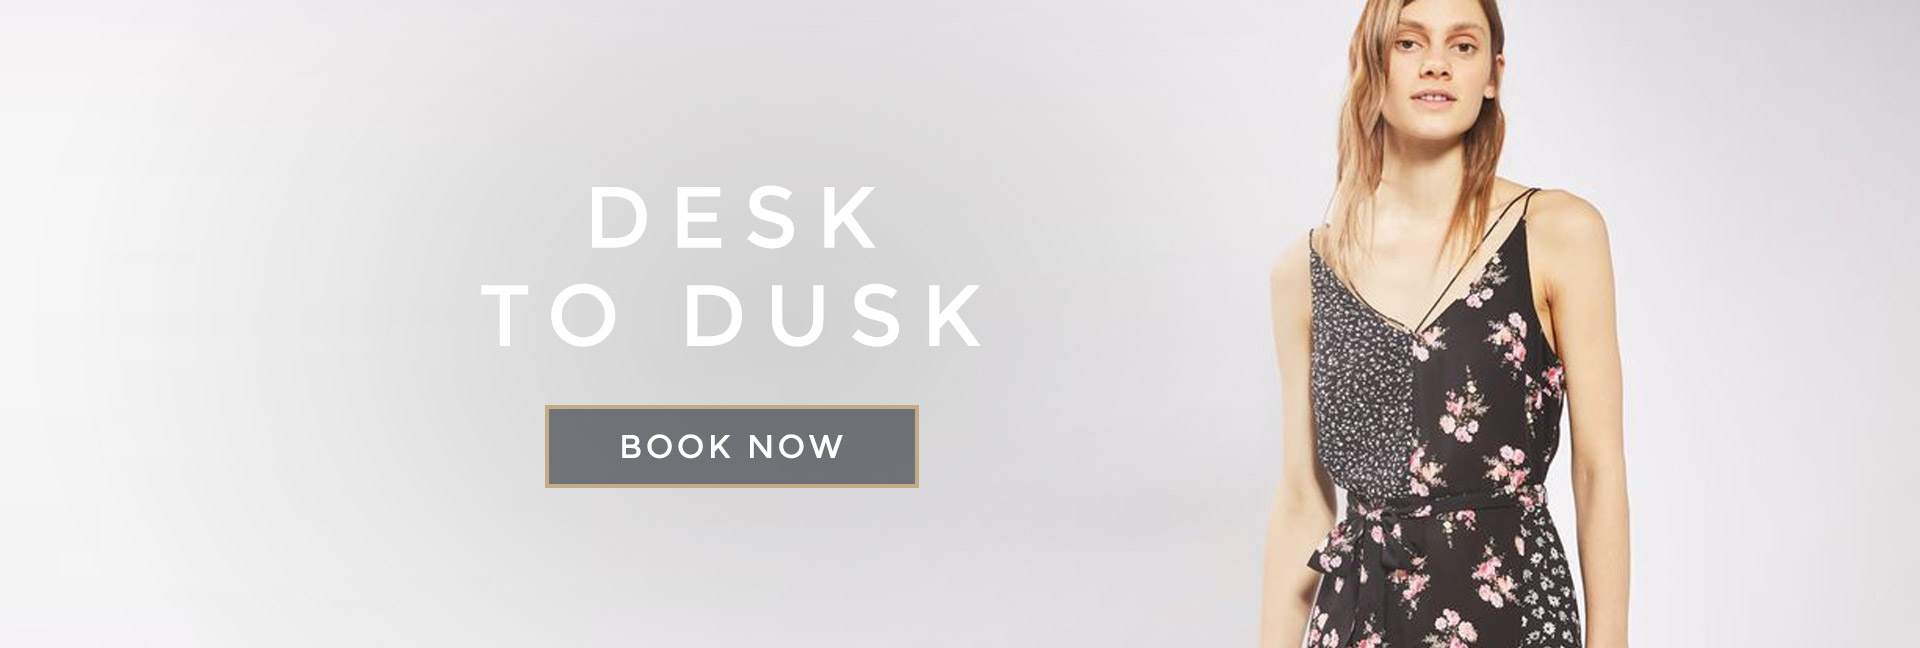 Desk to Dusk at [outlet] - Book your table